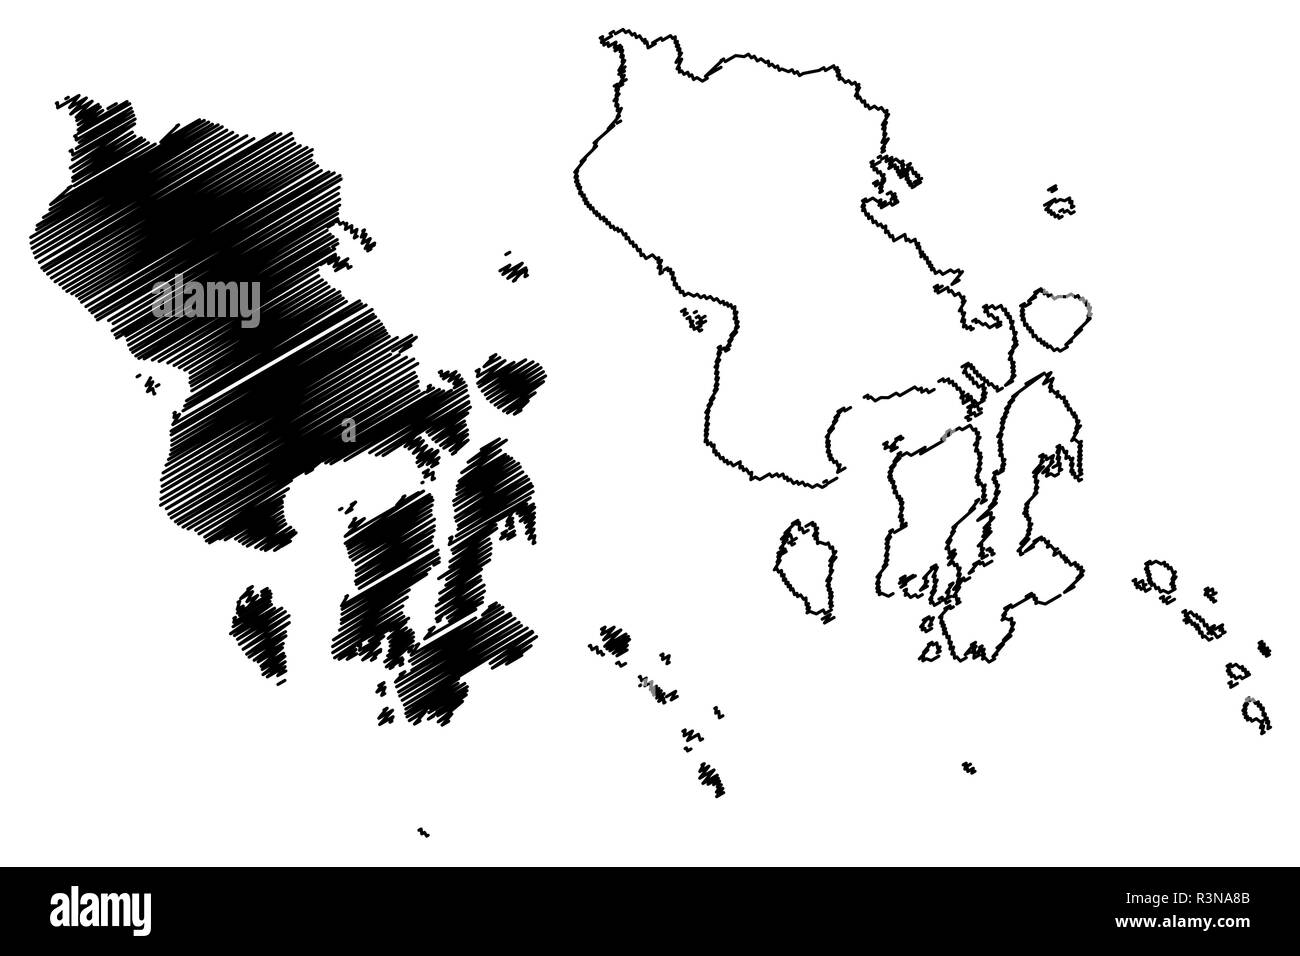 Southeast Sulawesi (Subdivisions of Indonesia, Provinces of Indonesia) map vector illustration, scribble sketch Southeast Sulawesi map Stock Vector